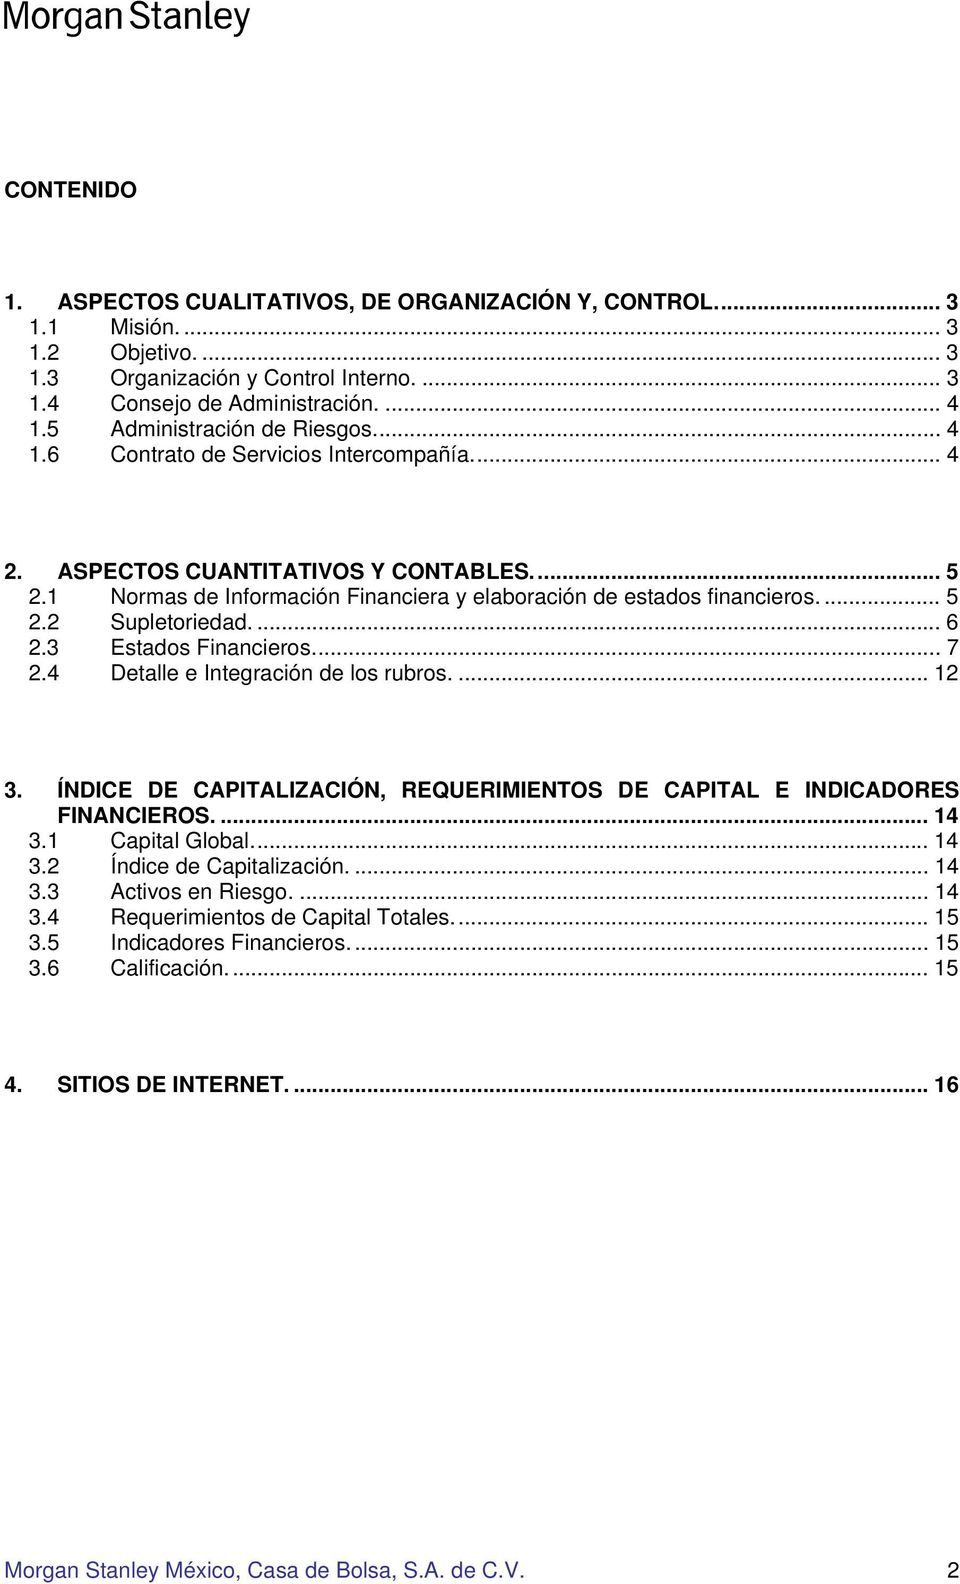 ... 6 2.3 Estados Financieros... 7 2.4 Detalle e Integración de los rubros.... 12 3. ÍNDICE DE CAPITALIZACIÓN, REQUERIMIENTOS DE CAPITAL E INDICADORES FINANCIEROS.... 14 3.1 Capital Global... 14 3.2 Índice de Capitalización.